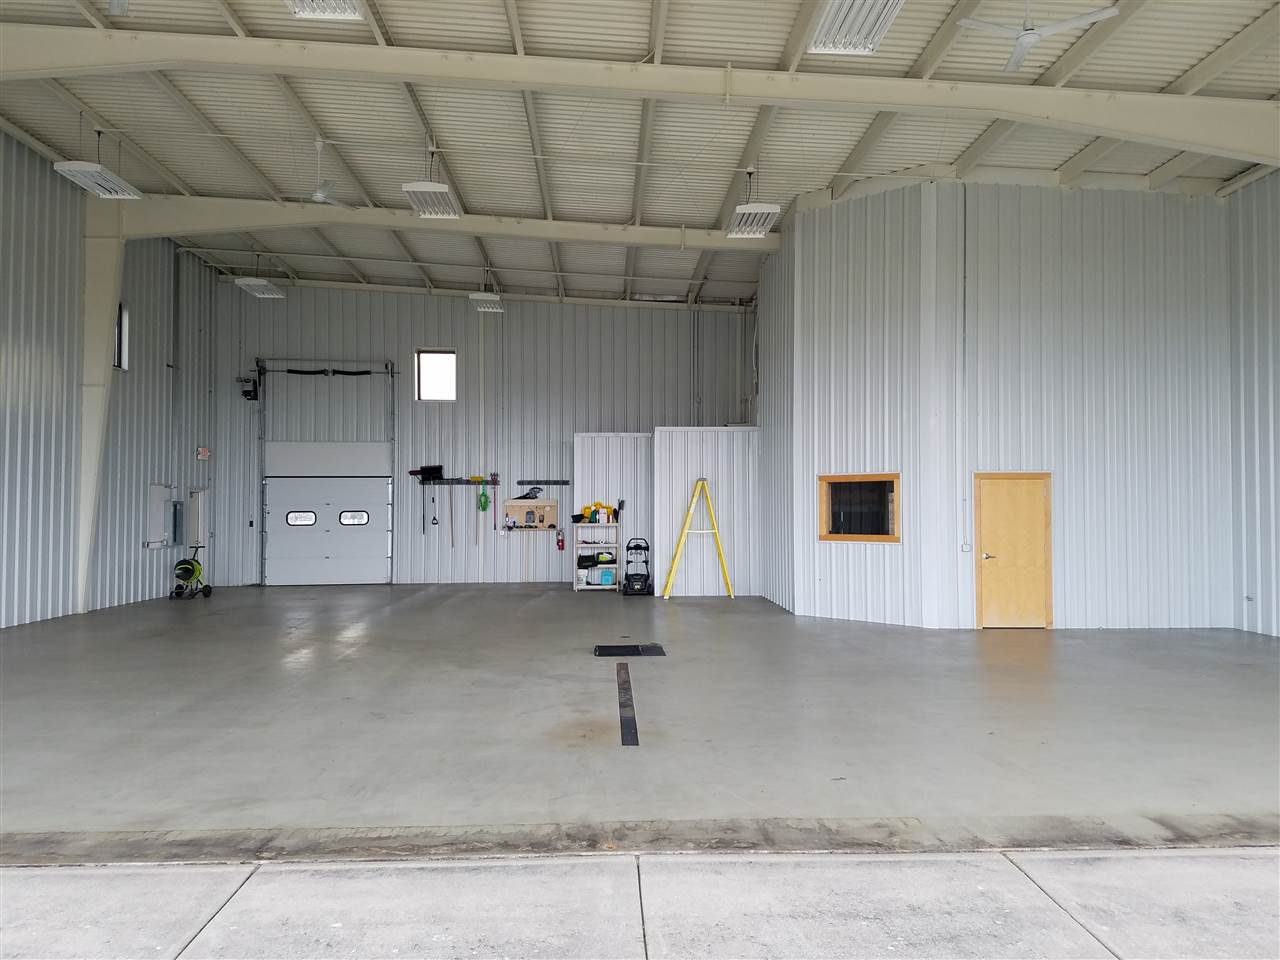 Inside hangar with in-floor heating and office air conditioning. Epoxy coated floor for wash-down and snow melting.